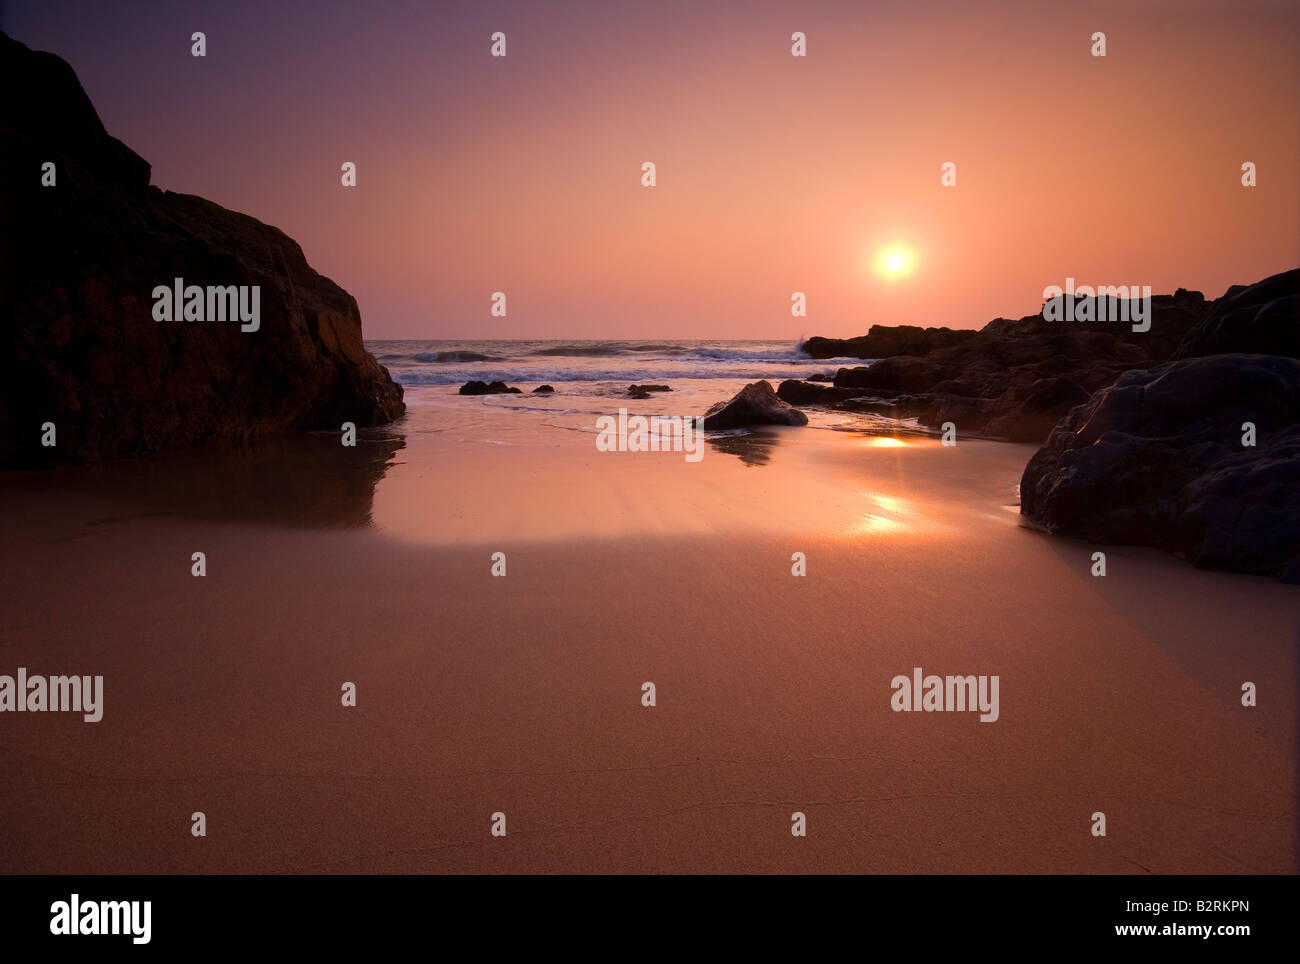 Arambol, North Goa, India, Subcontinent, Asia - Stock Image